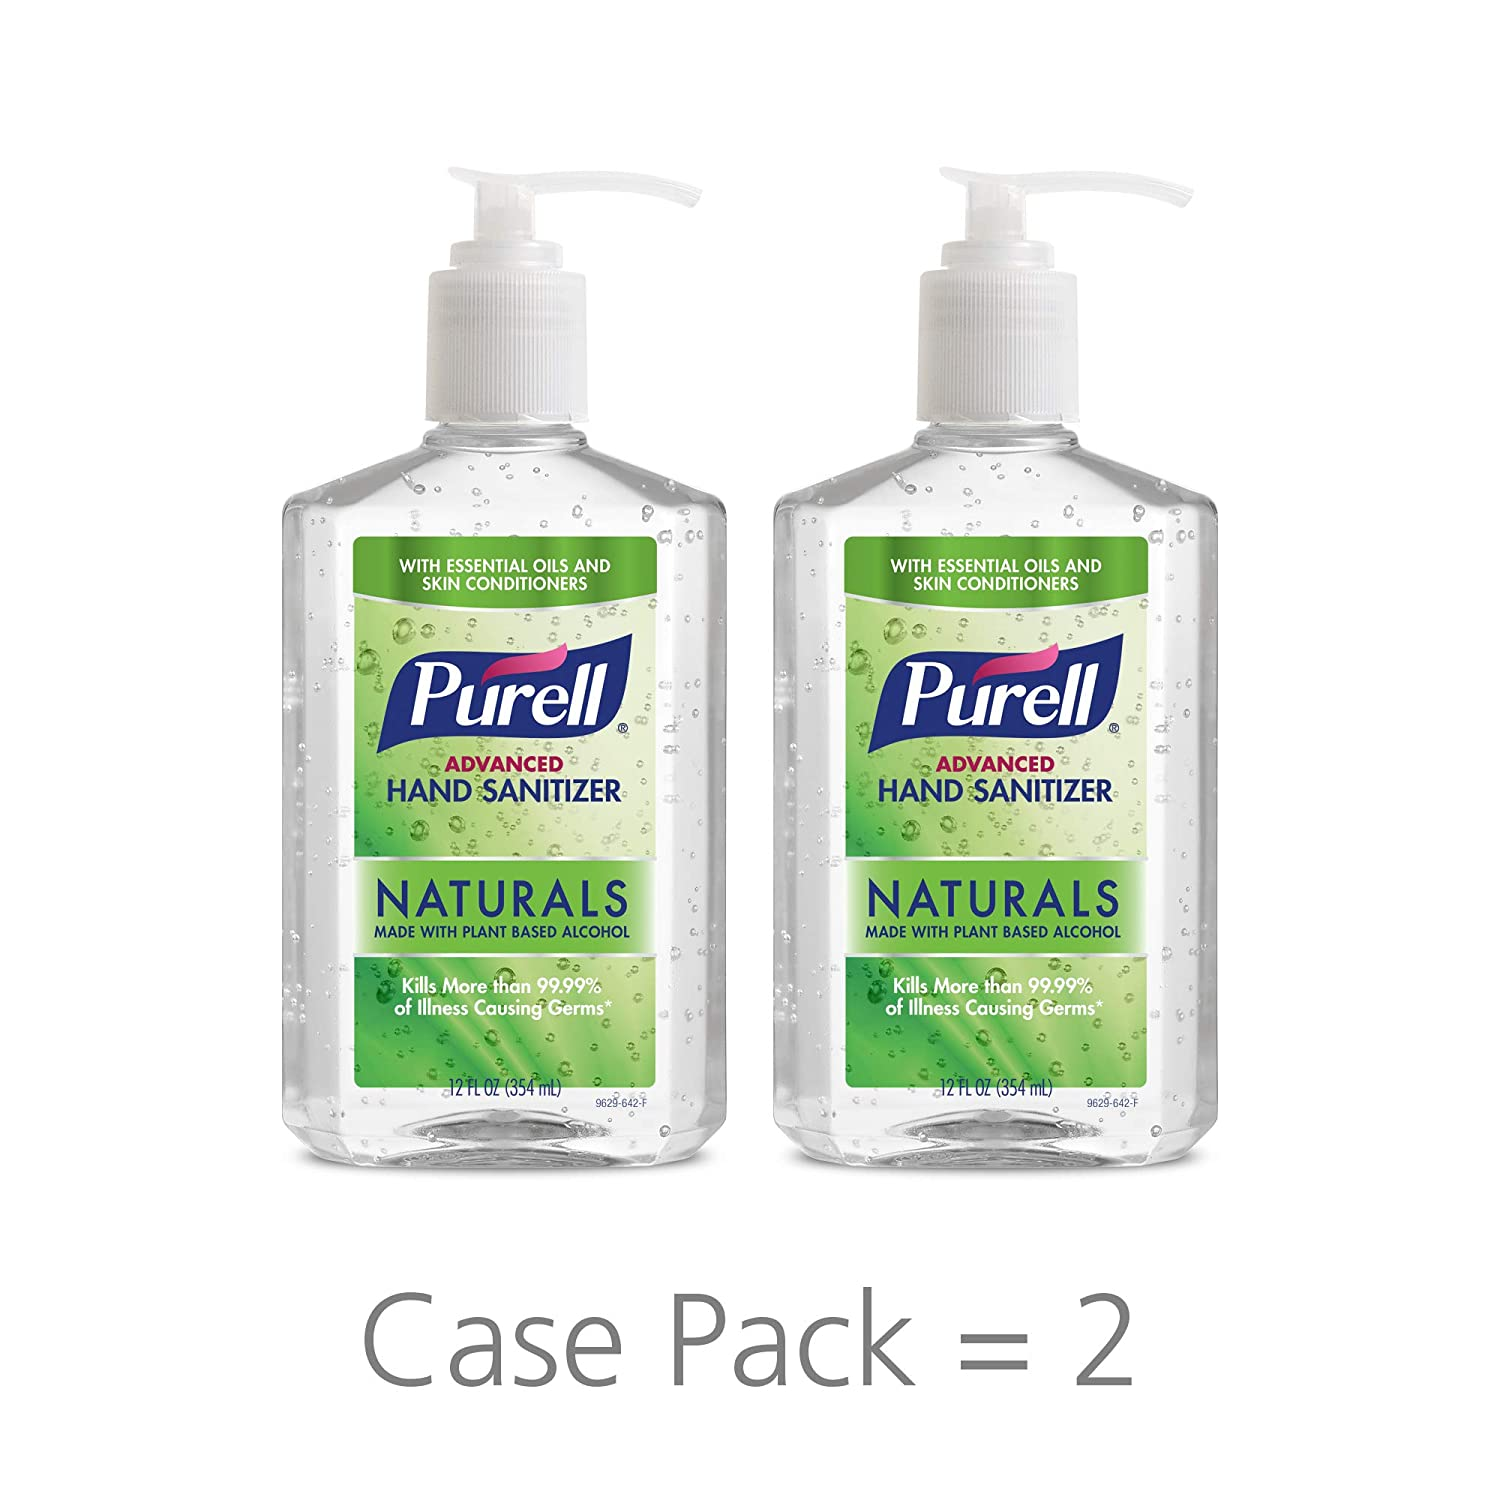 Purell advanced hand sanitizer naturals